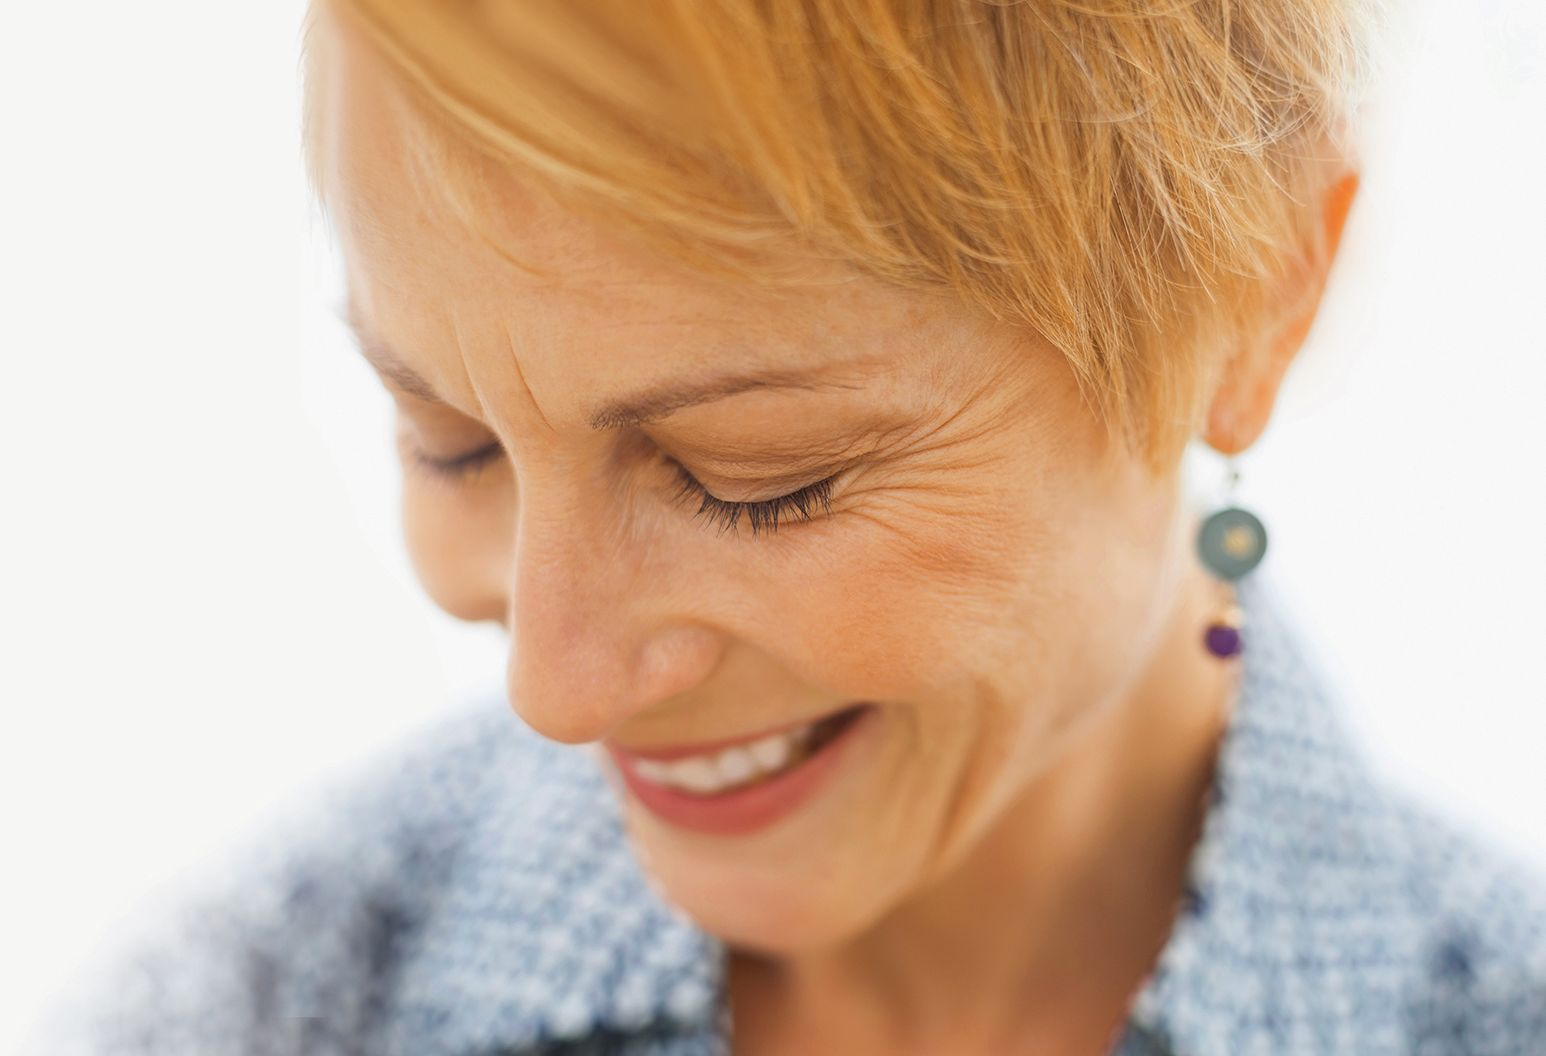 Mature woman smiling with eyes closed